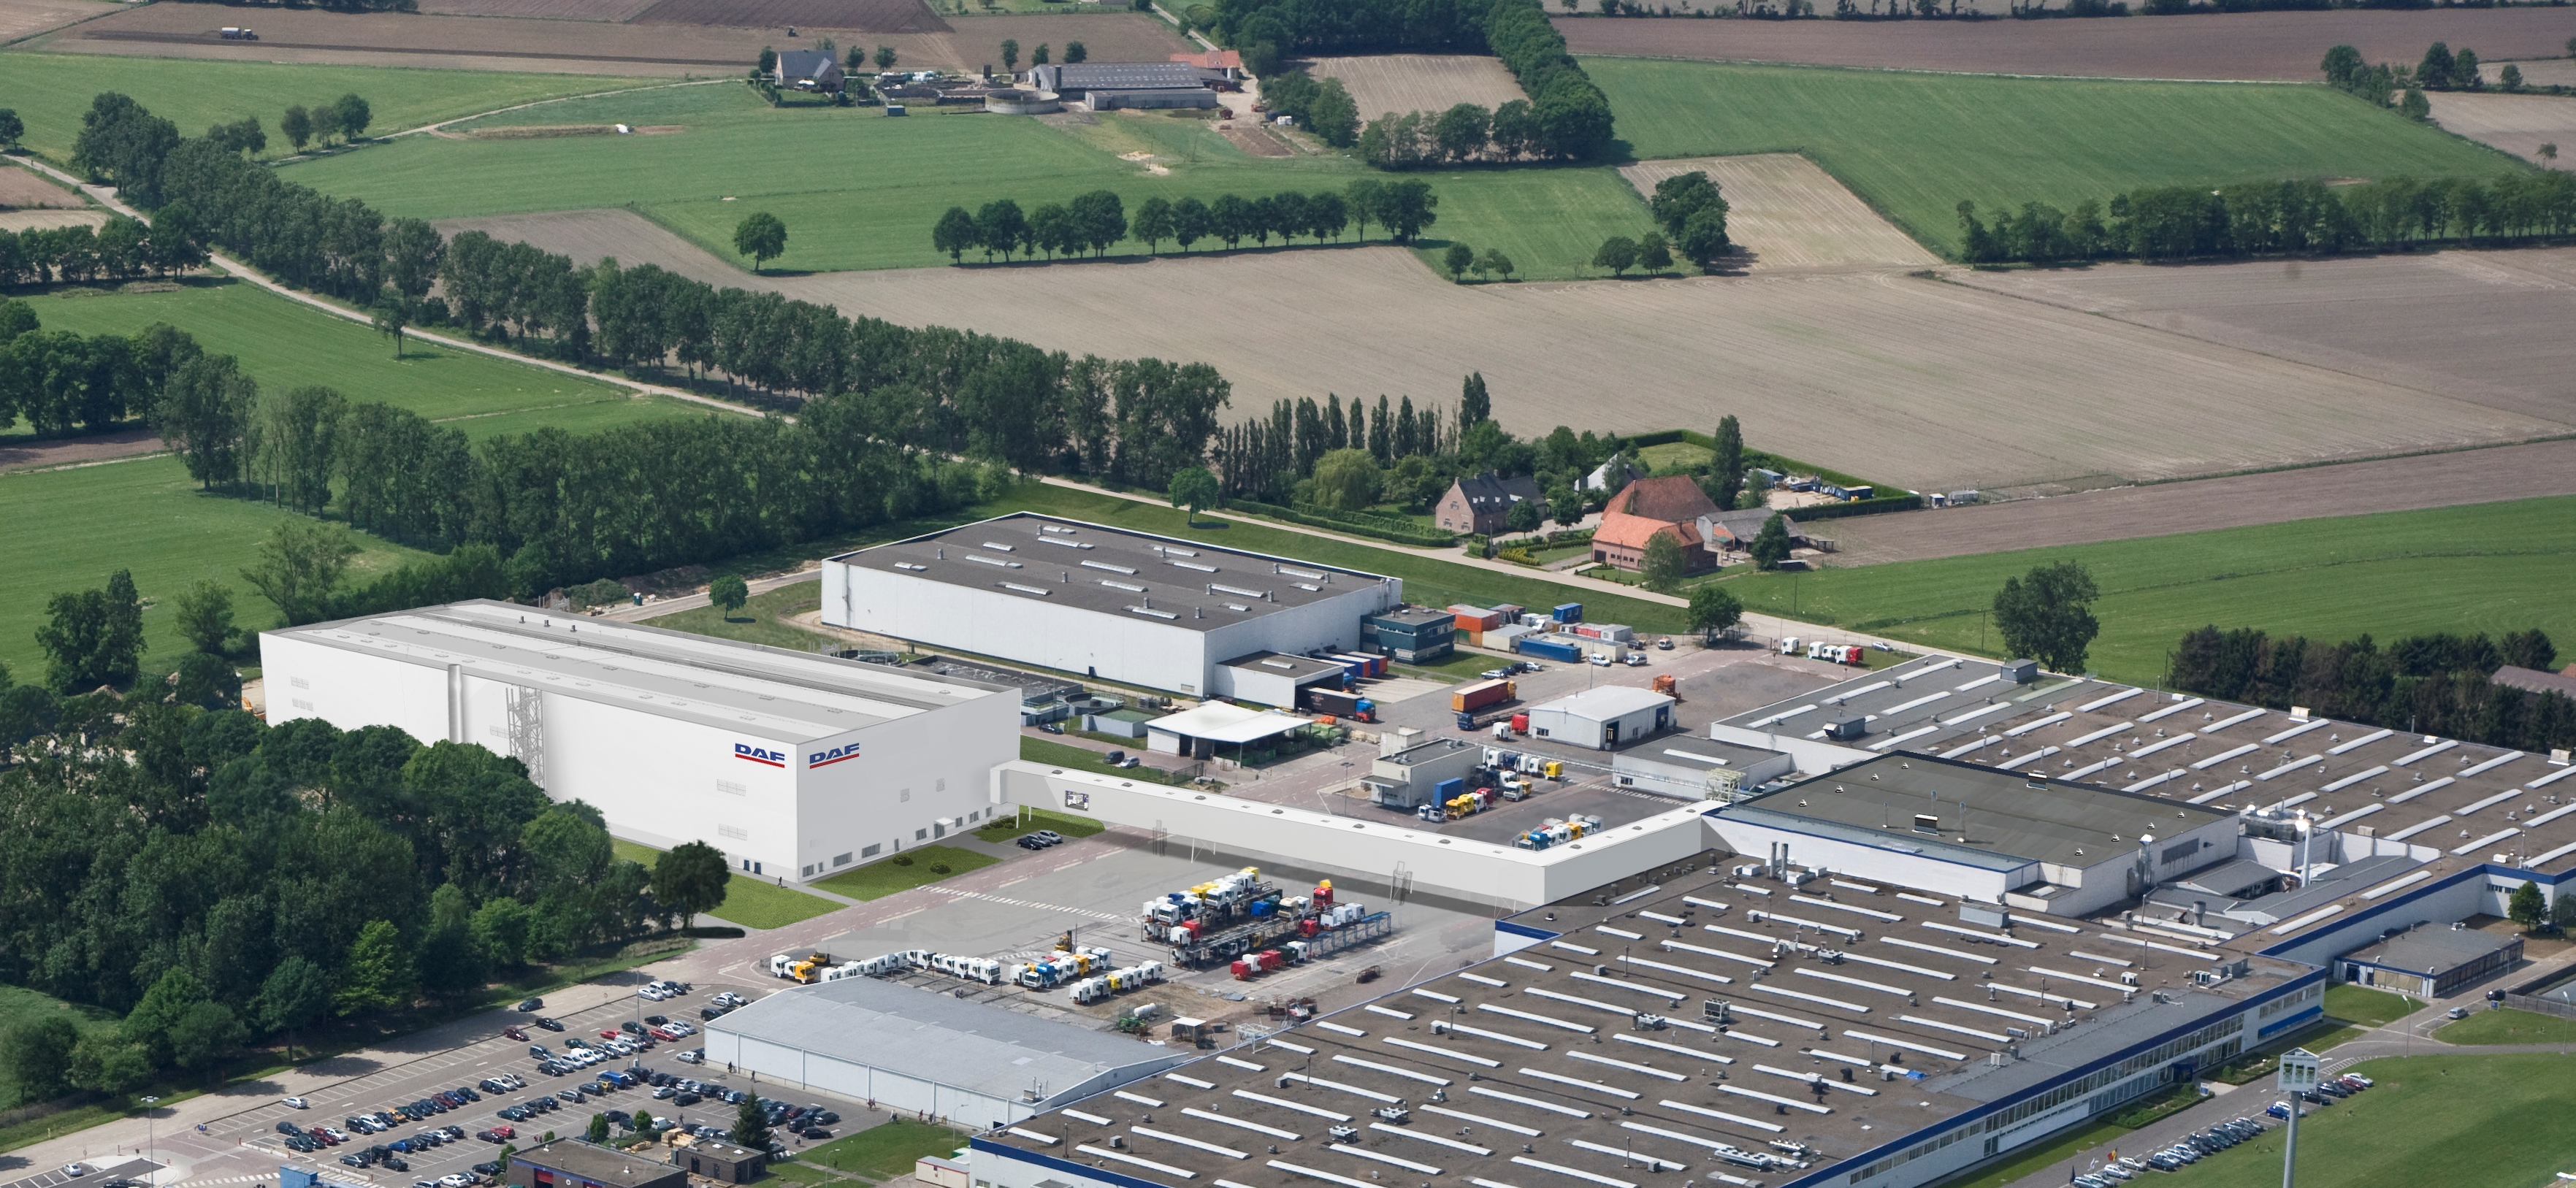 DAF invests 100 mln in new paint shop